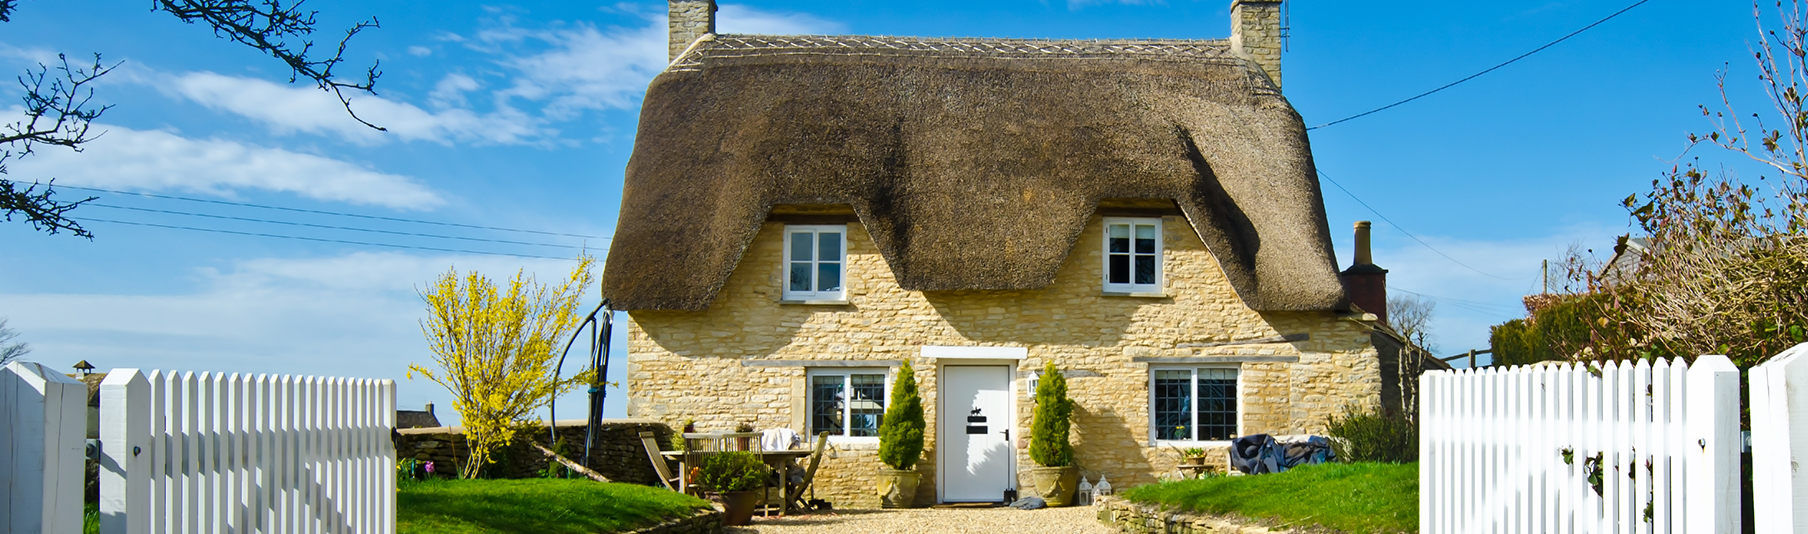 Household Insurance: A charming yellow cottage located in the countryside